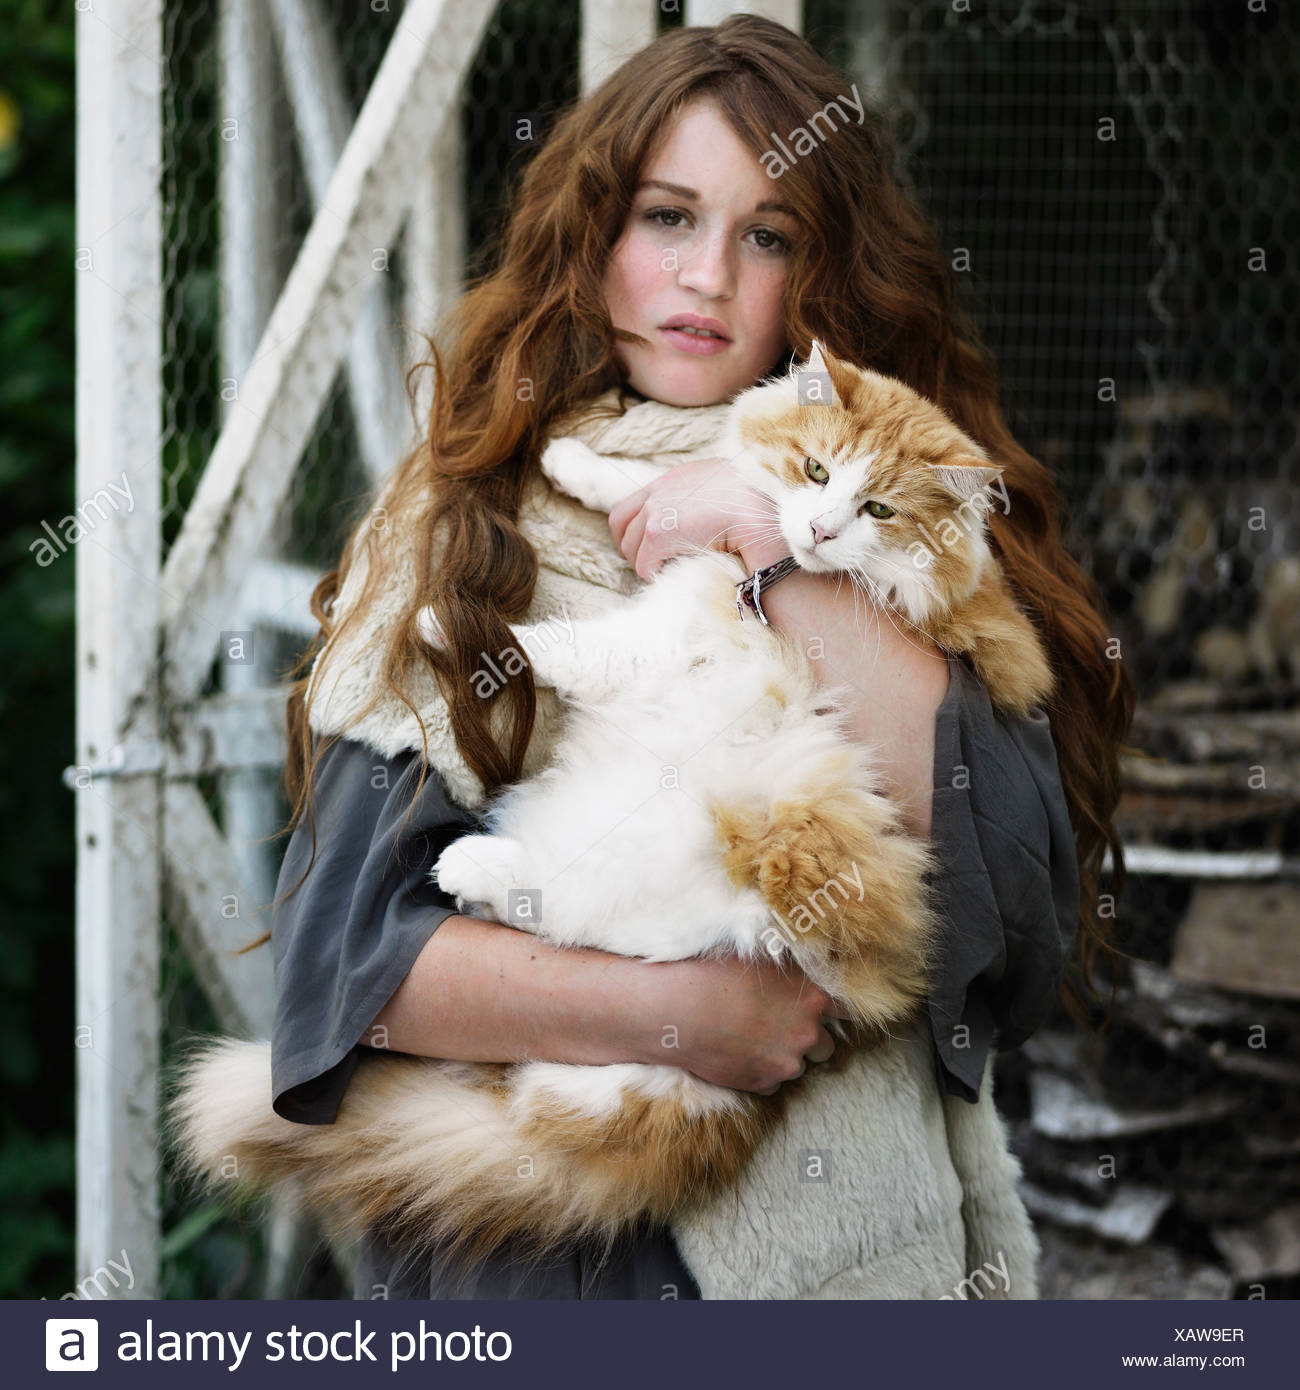 Woman holding large cat outdoors - Stock Image